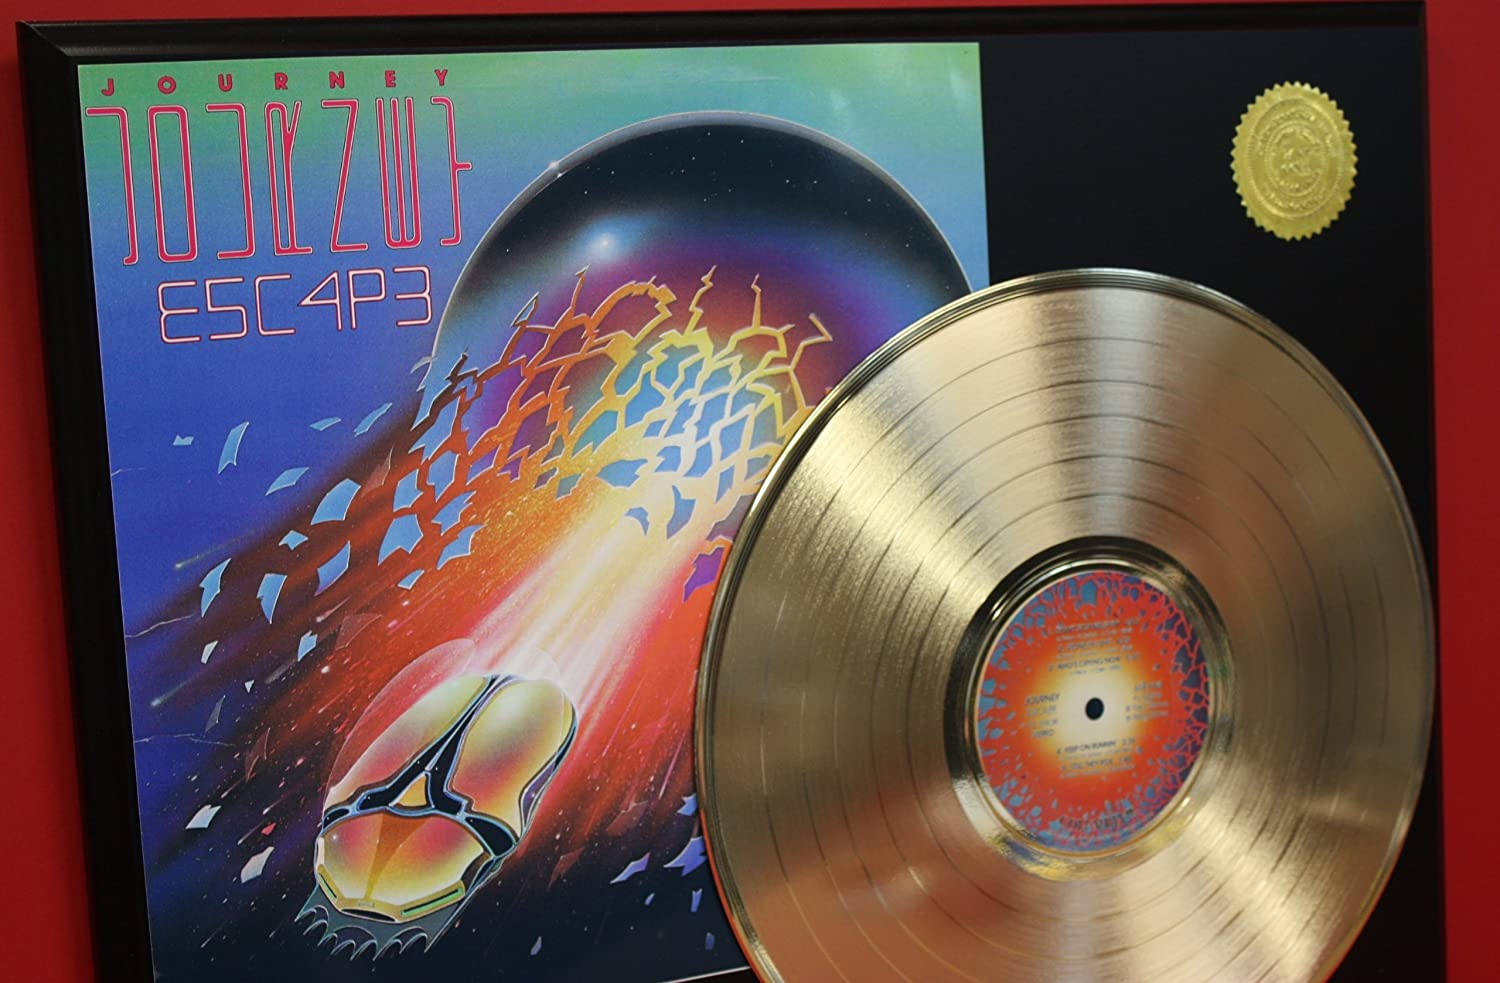 Journey E5C4P3 24Kt Gold LP Record LTD Edition Display ac dc dirty deeds done dirt cheap ltd edition 24kt gold lp record